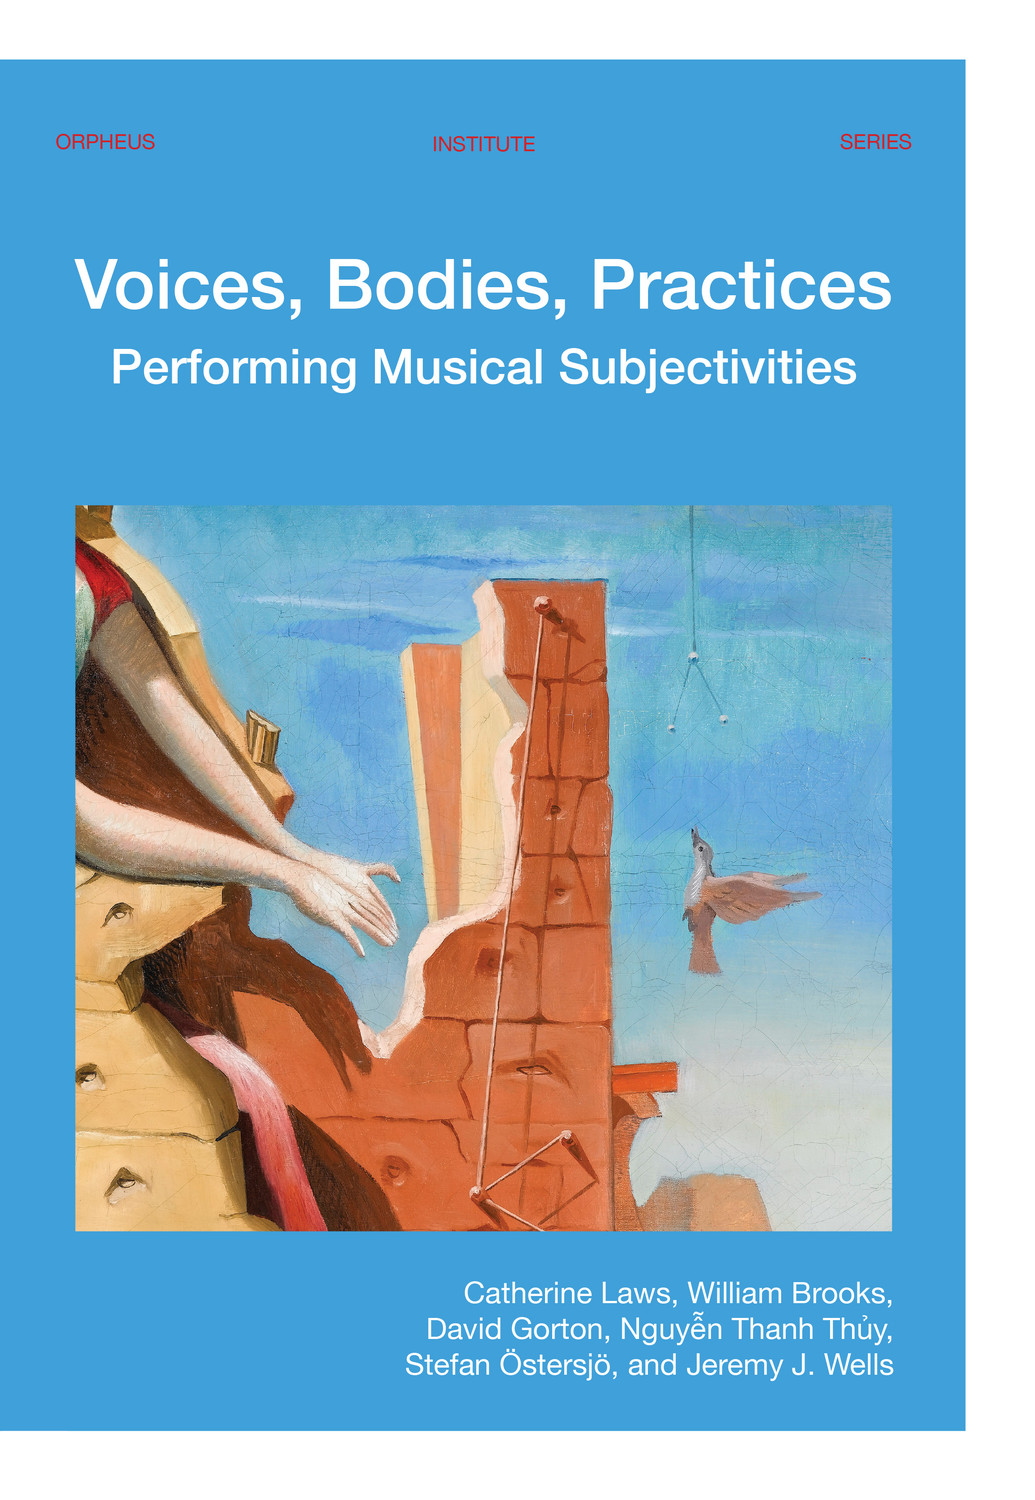 Voices, Bodies, Practices